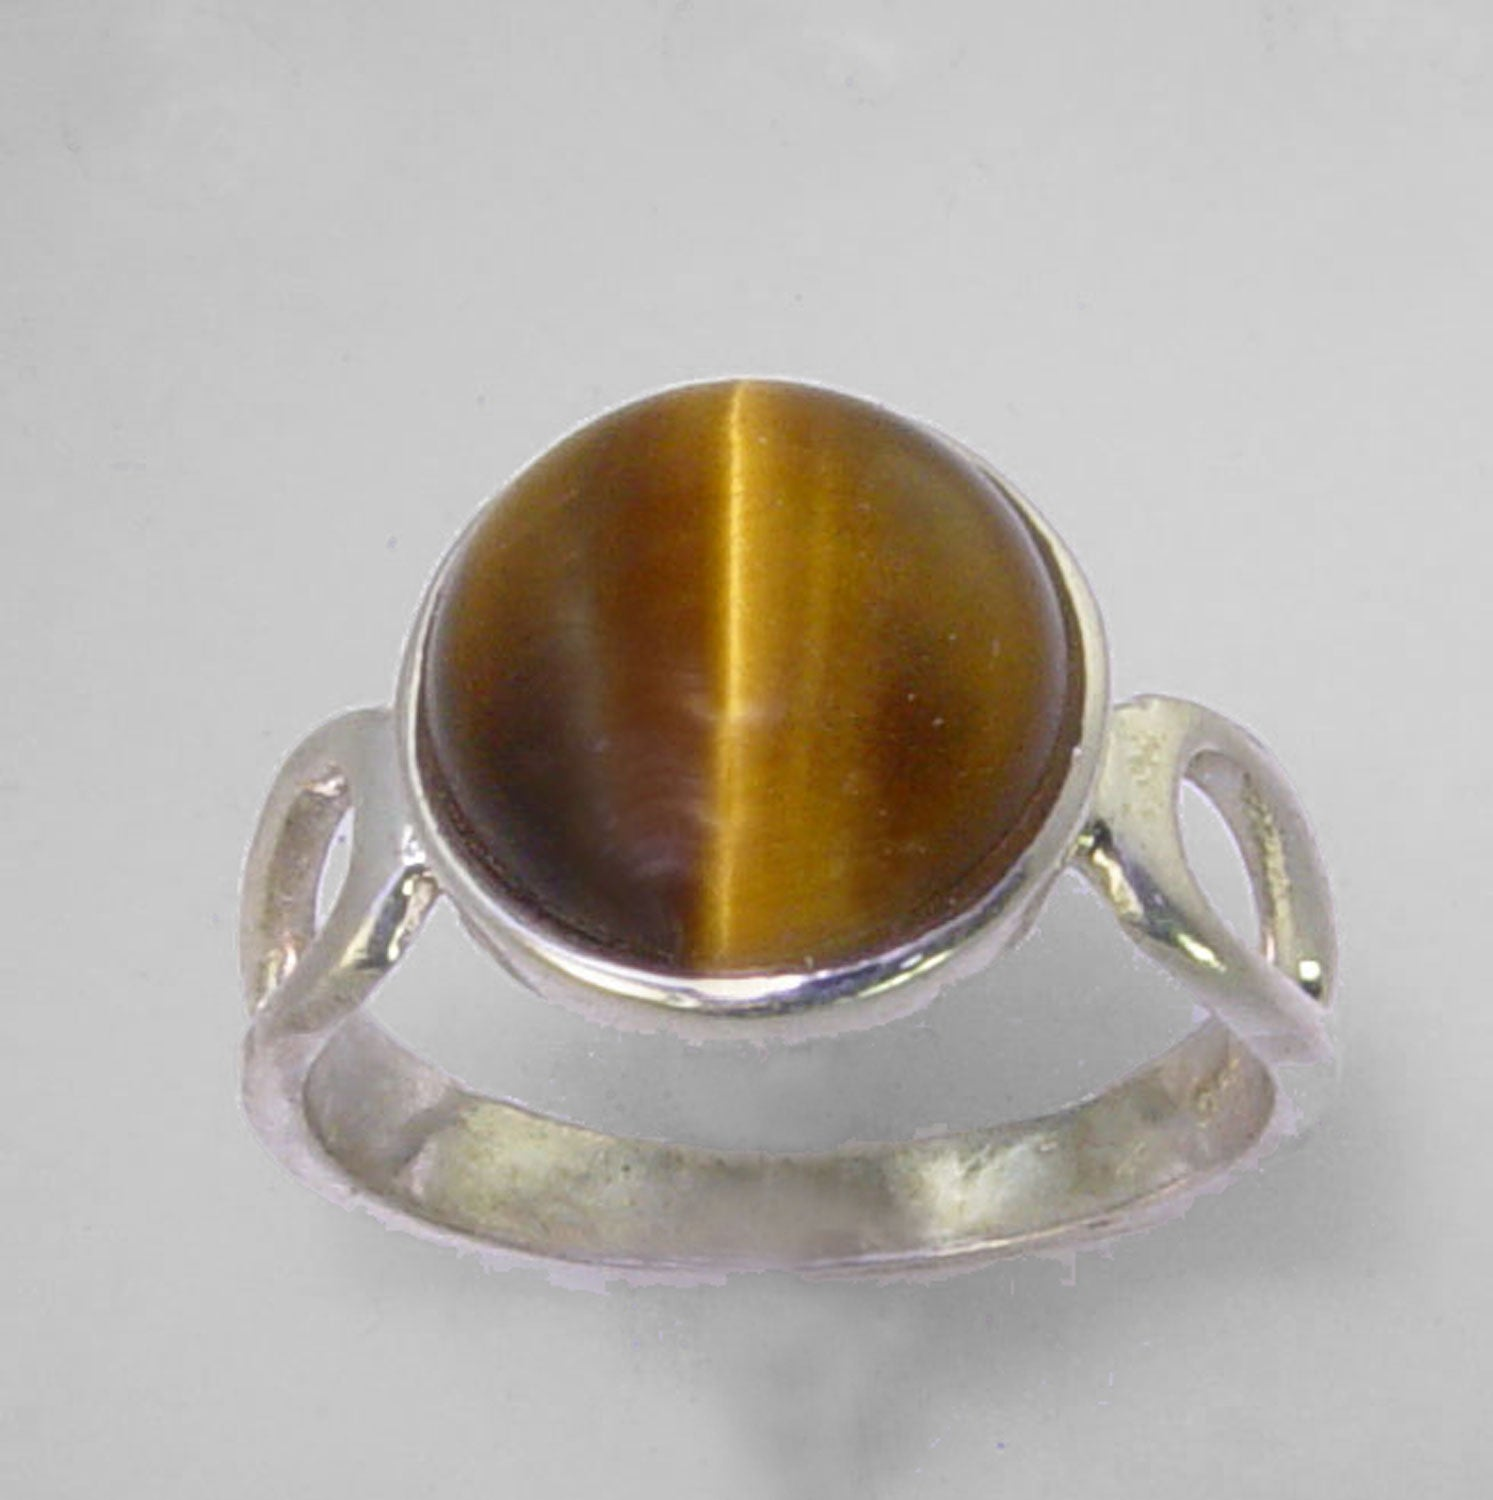 Tigereye Cat's Eye 2.95 ct Round Cab Sterling Silver Ring, Size 7